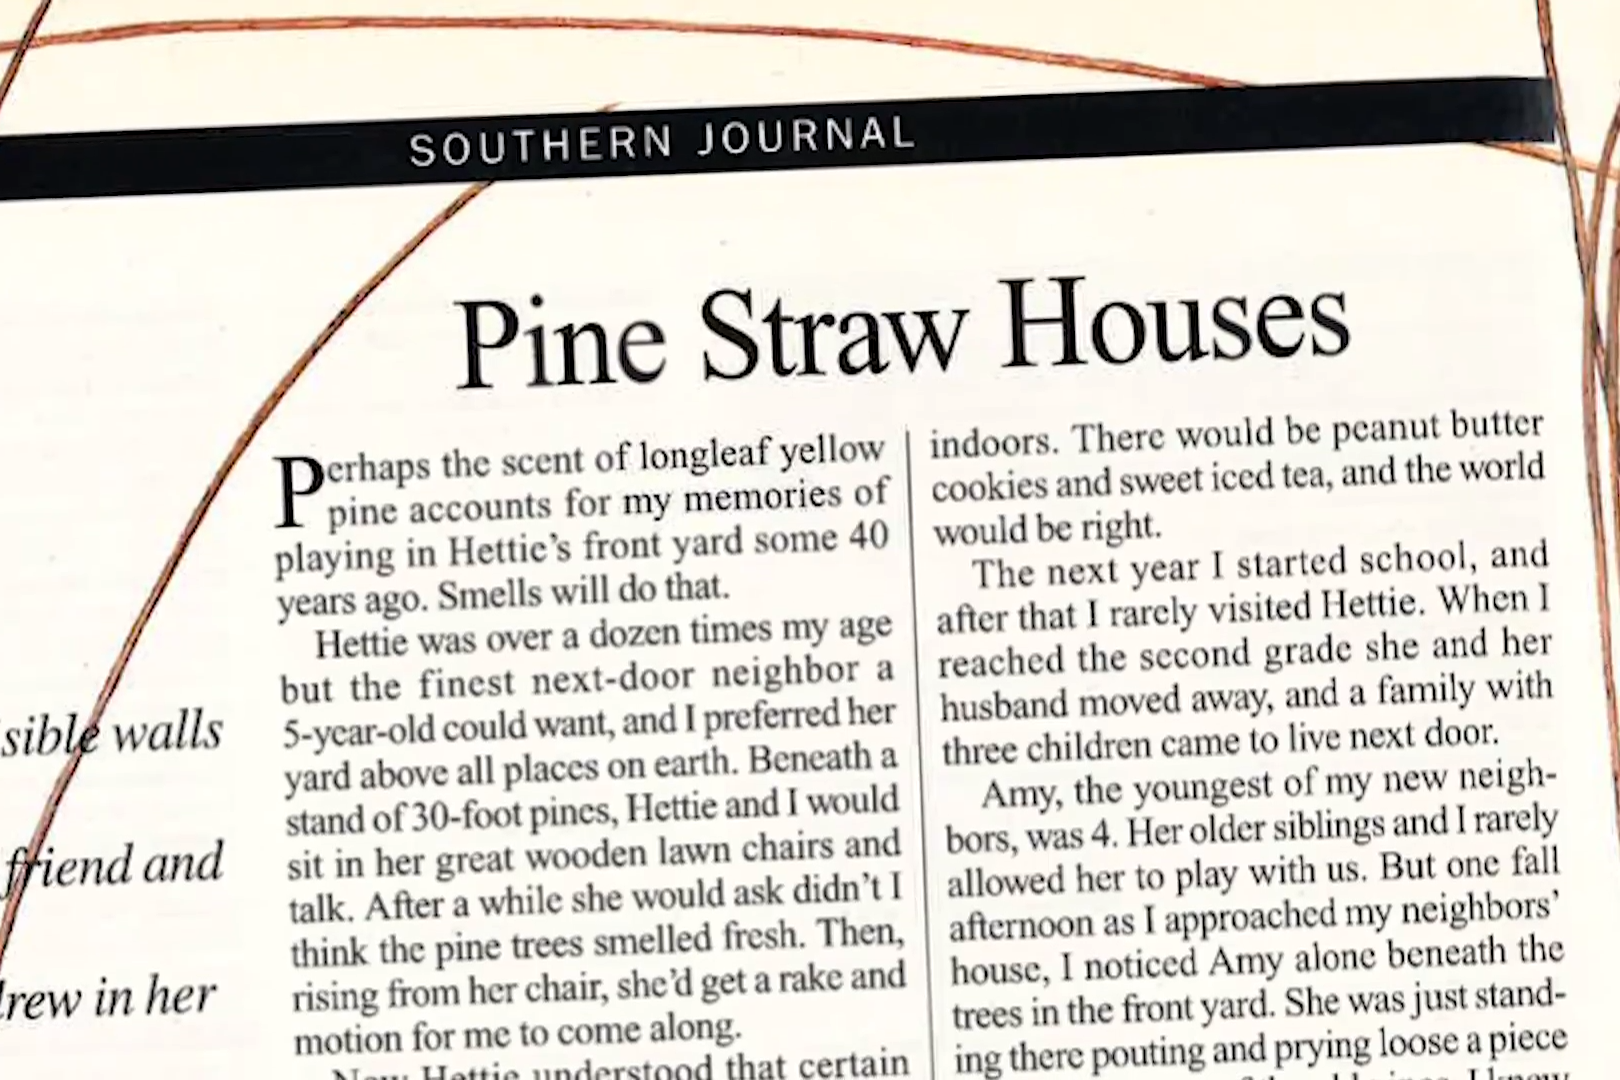 Stories Of The South: Pine Straw Houses